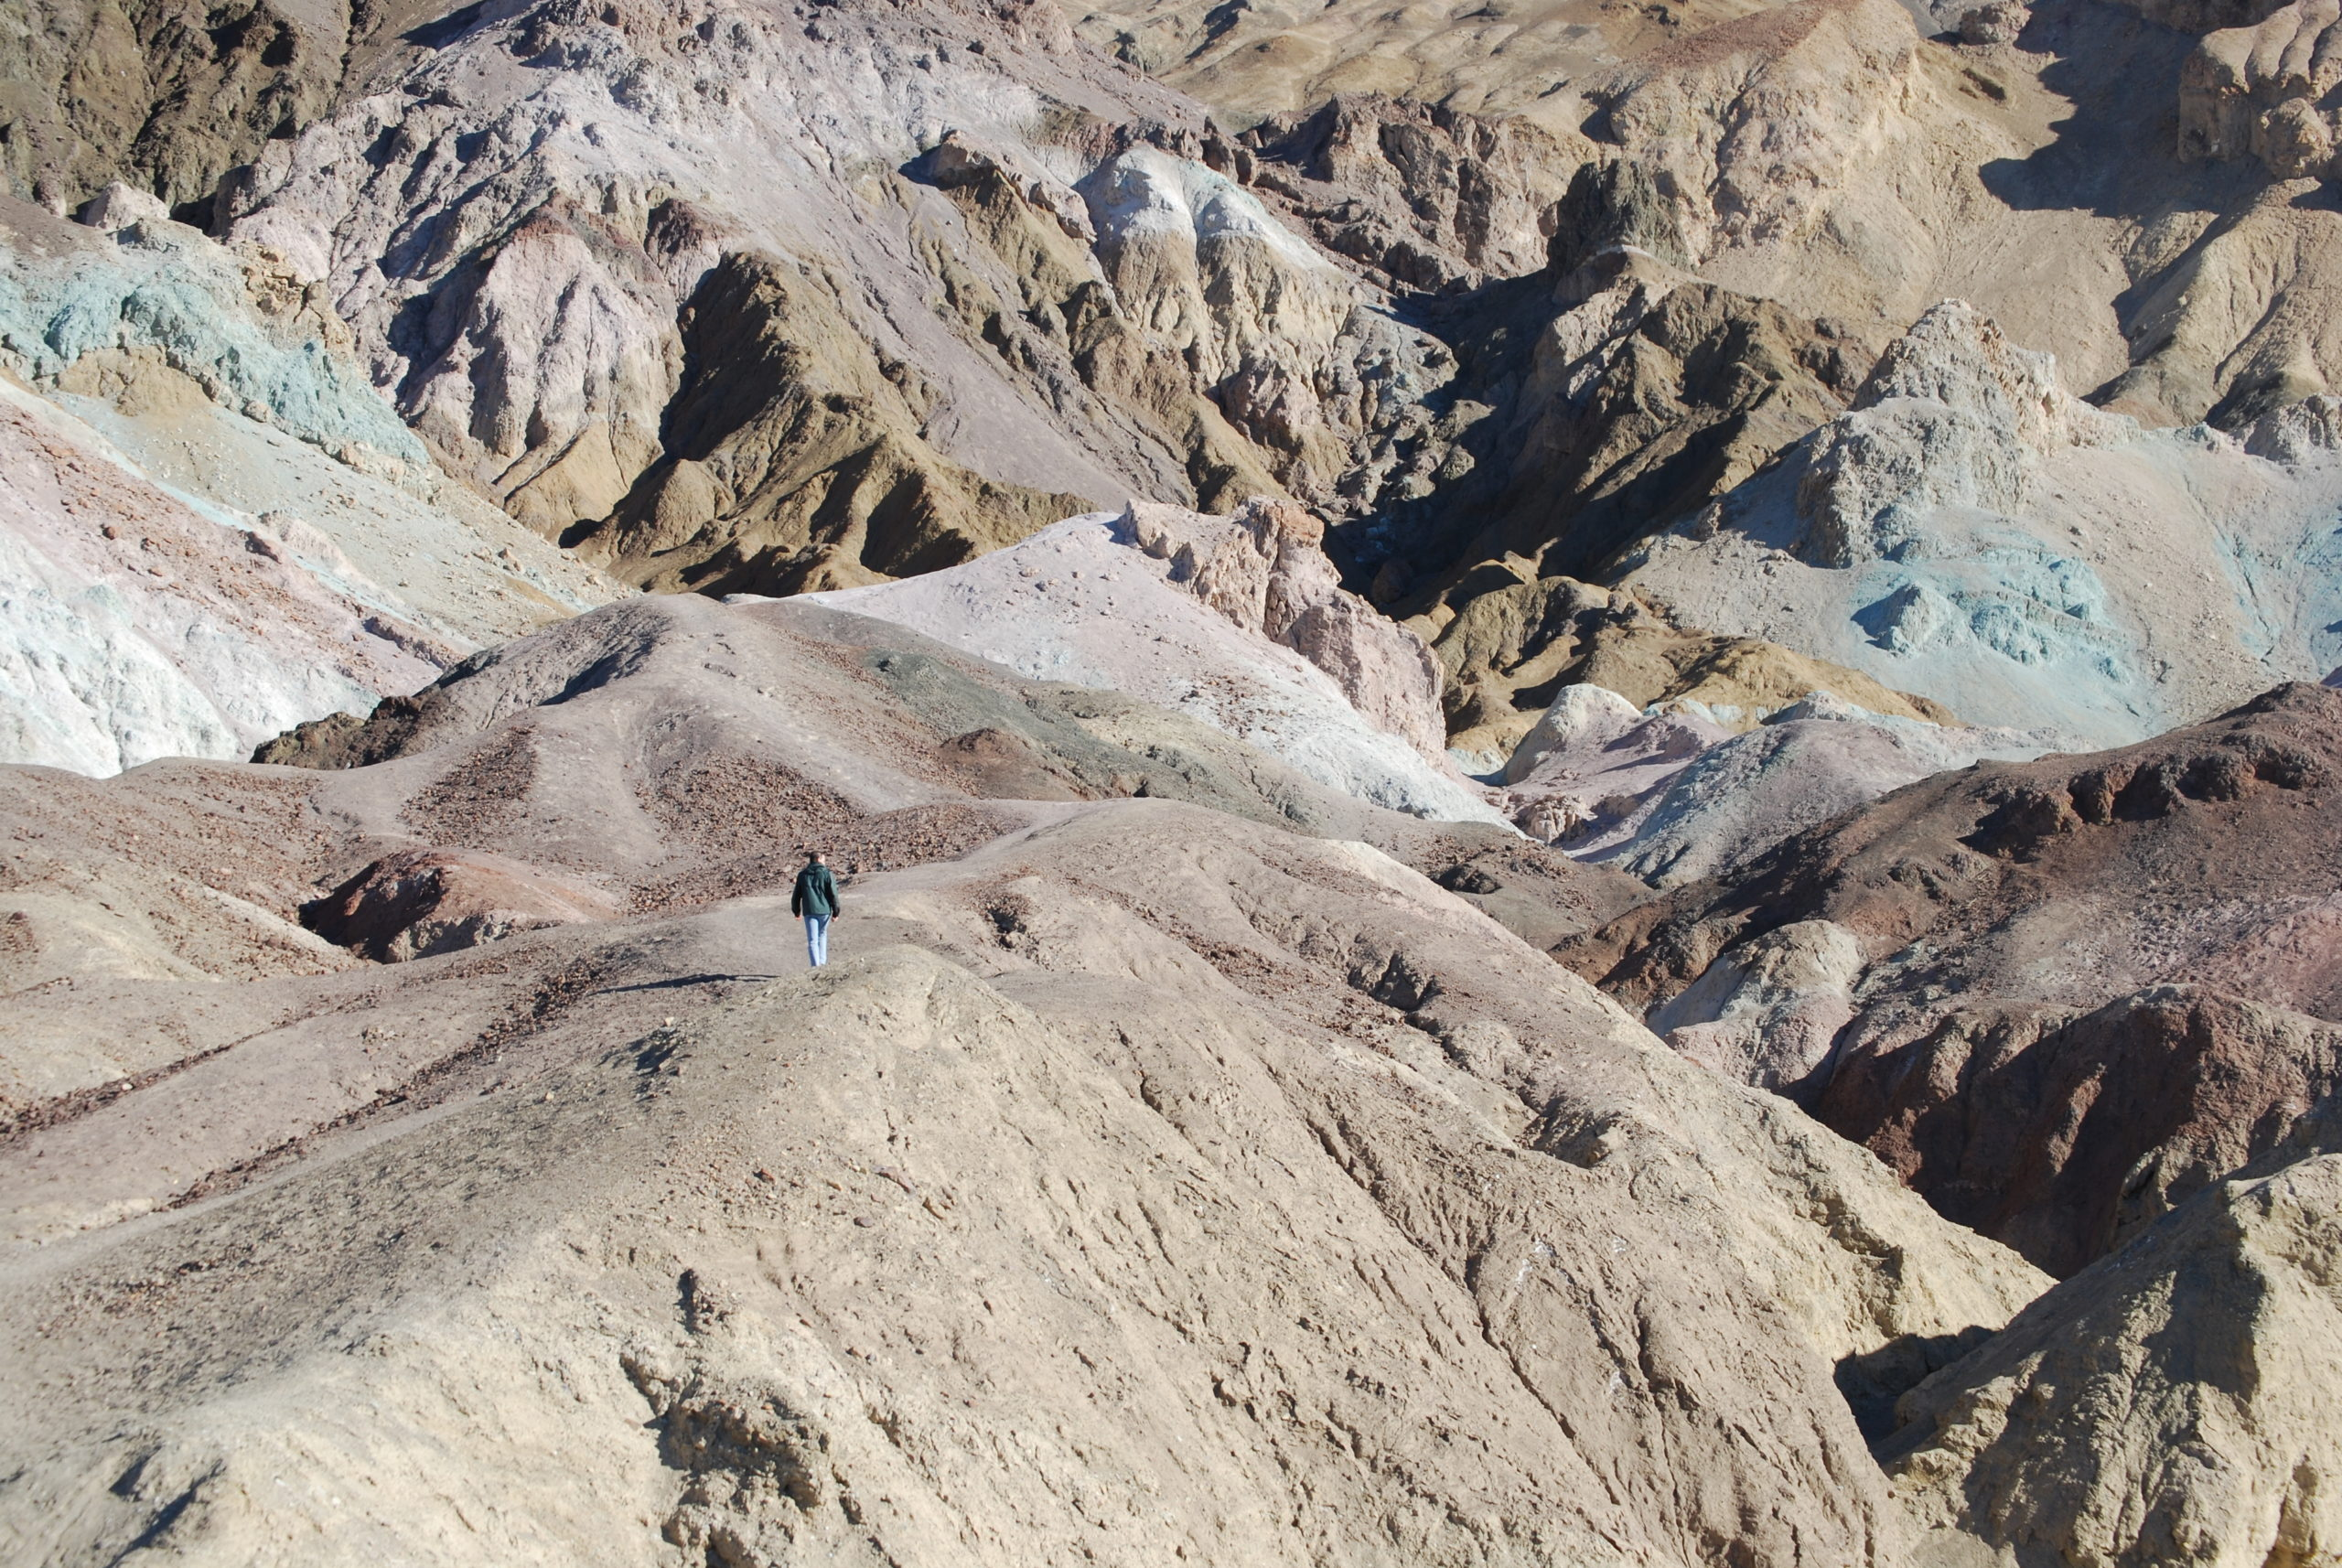 A short day trip from Las Vegas, Death Valley National Park offers family-friendly hikes.